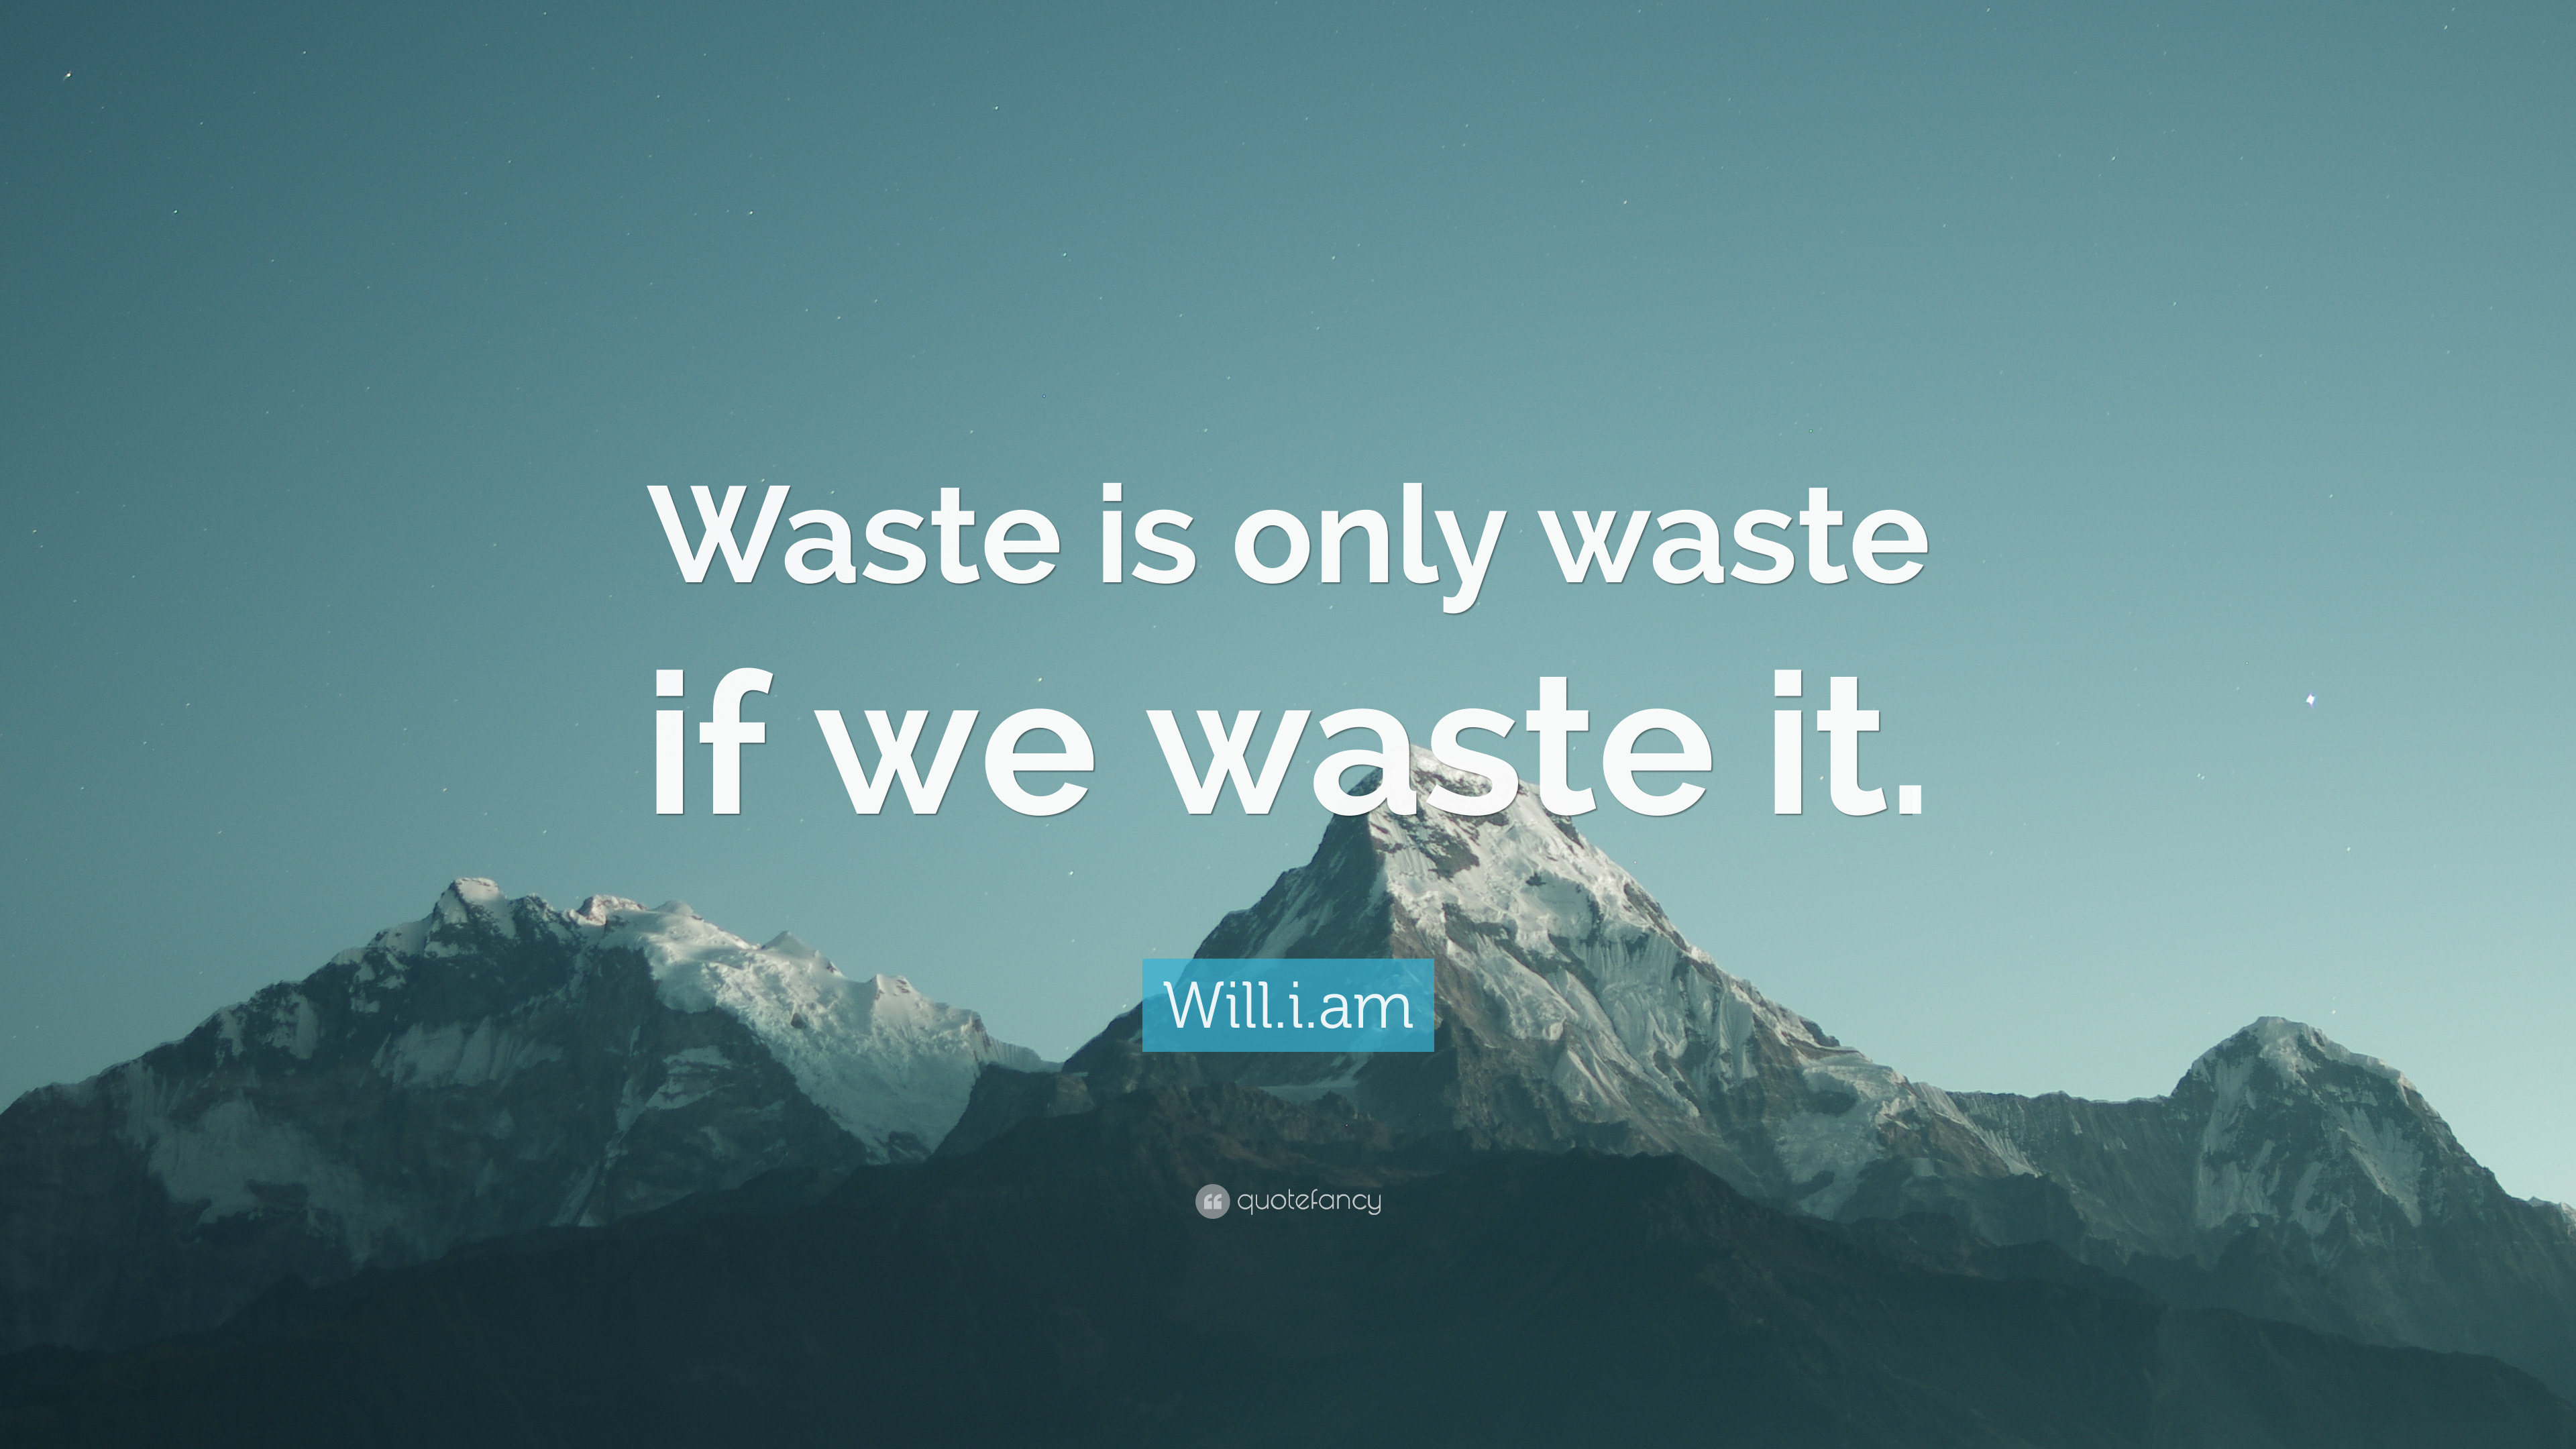 William Quote Waste Is Only Waste If We Waste It 7 Wallpapers